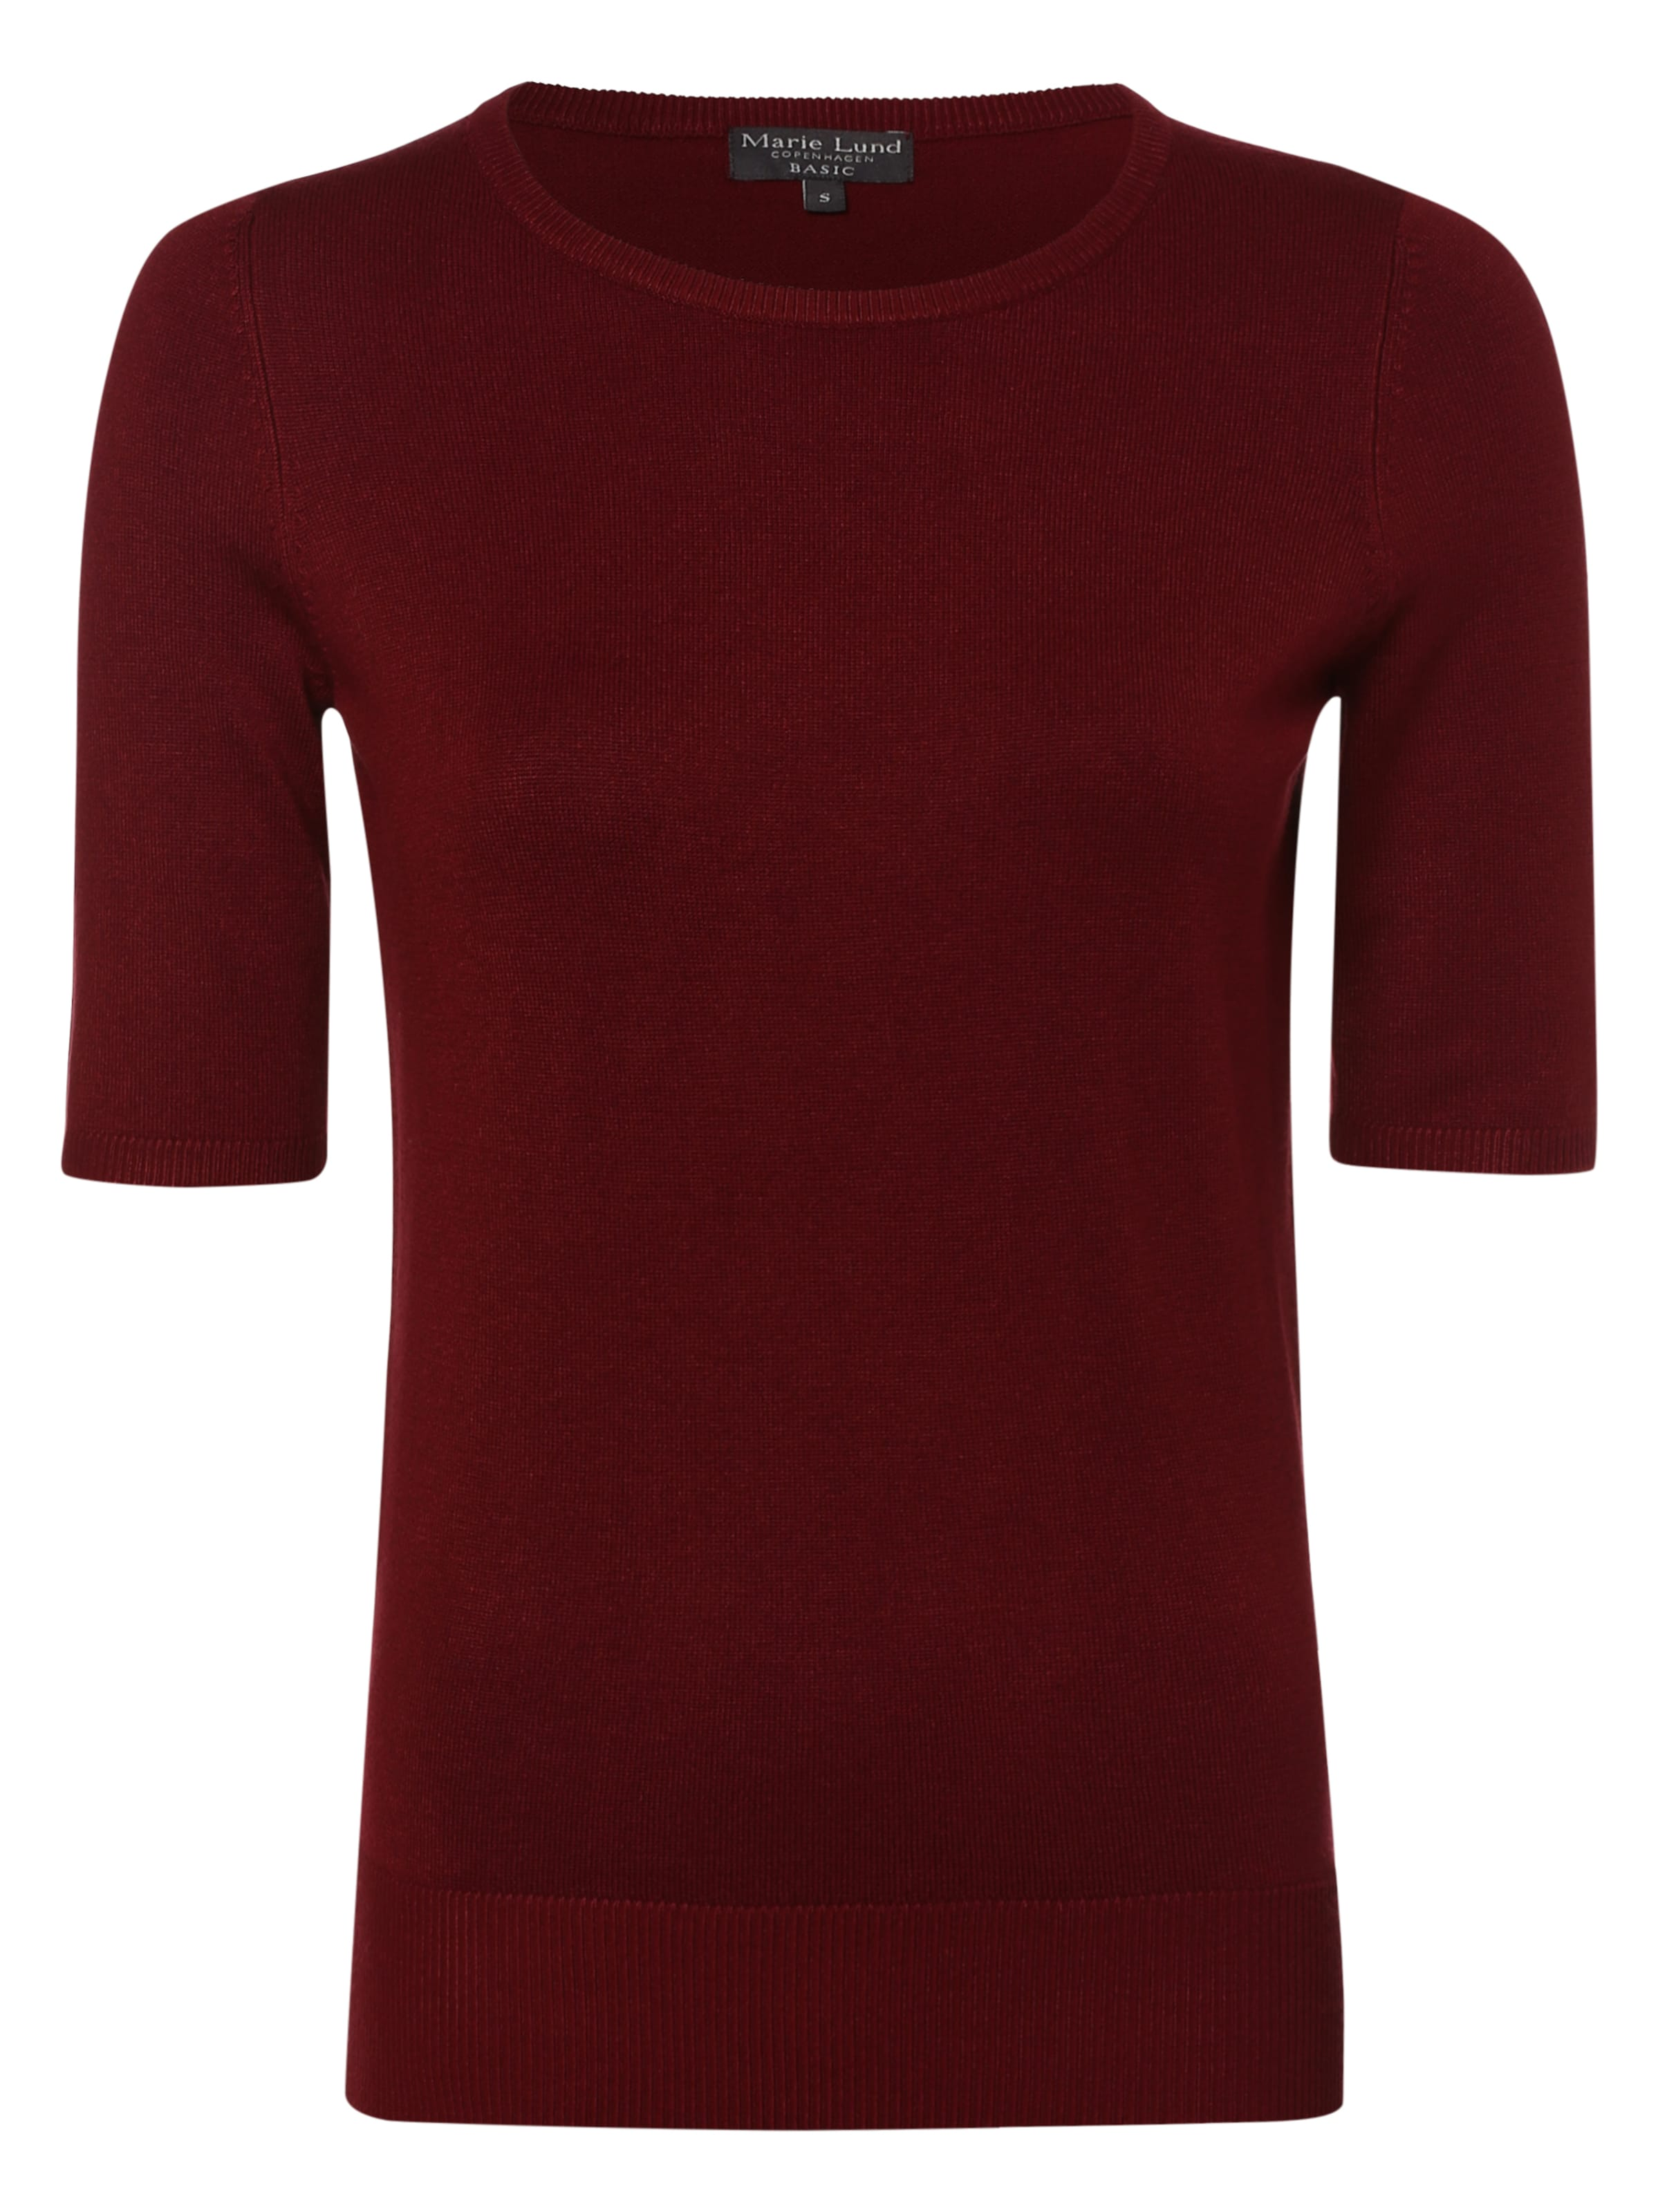 Marie Pullover In Merlot Pullover Lund Marie In Lund Lund Merlot Marie Pullover VzpLUMqSG